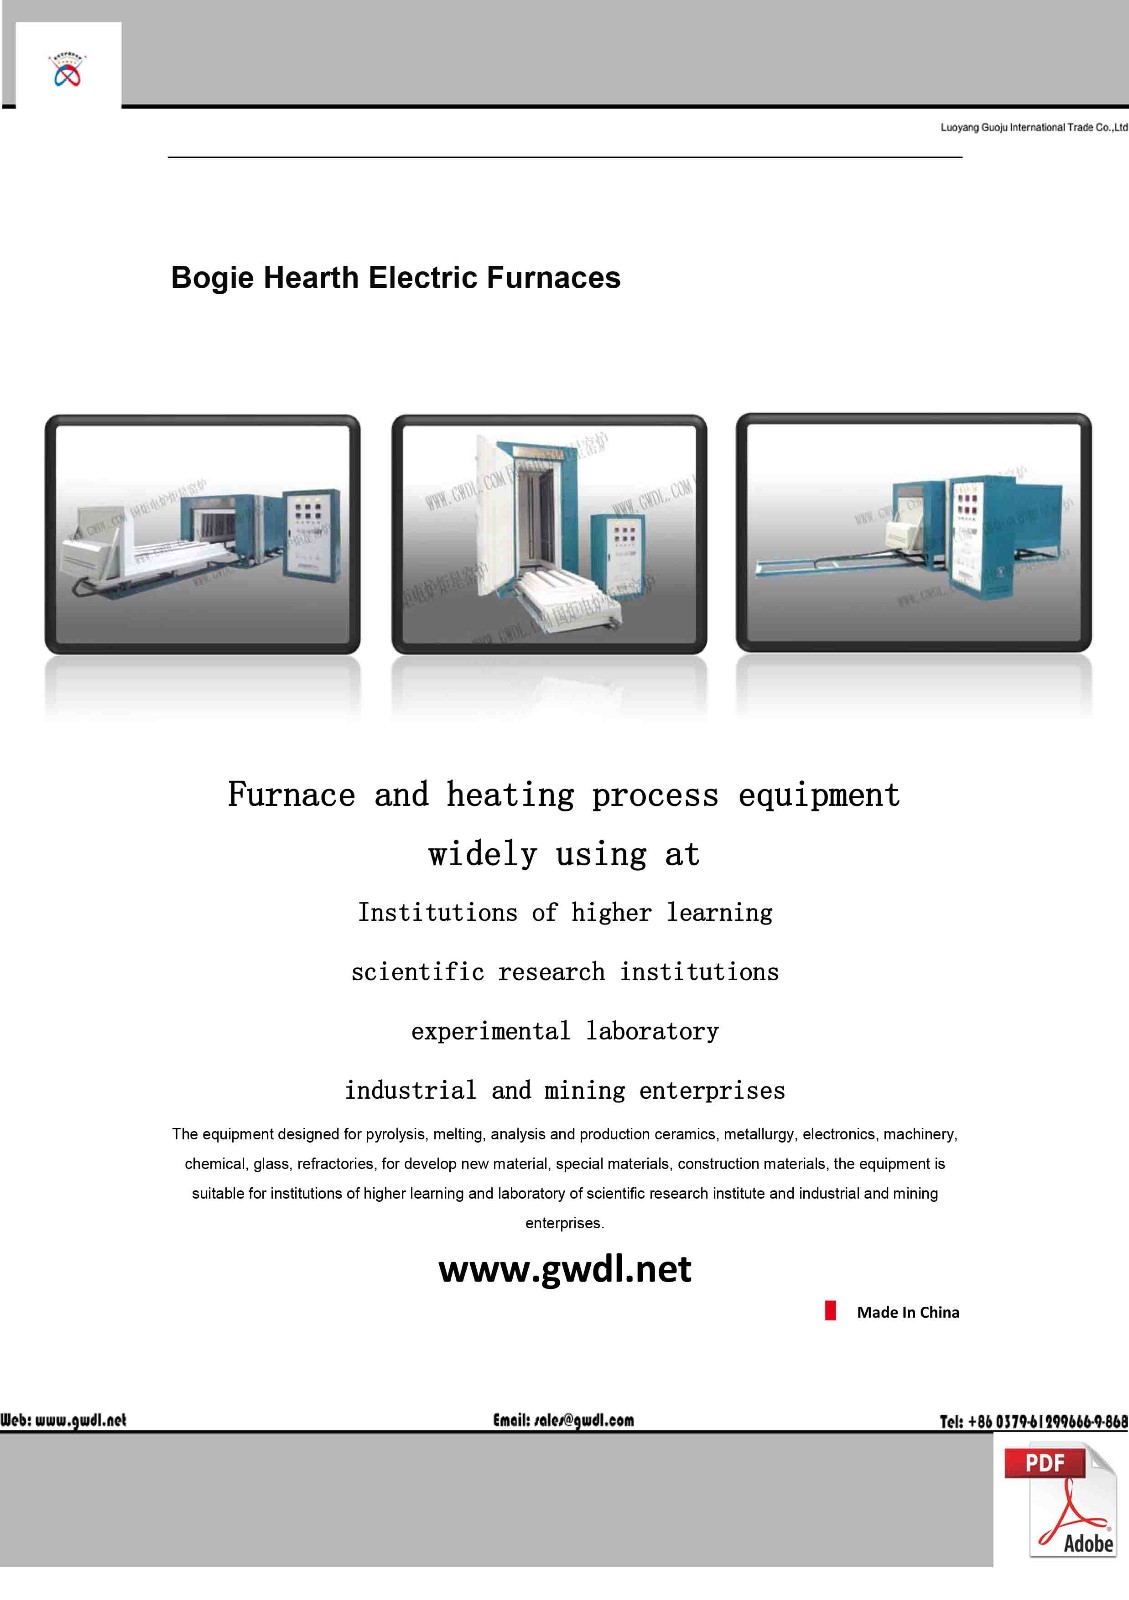 Bogie Hearth Electric Furnaces